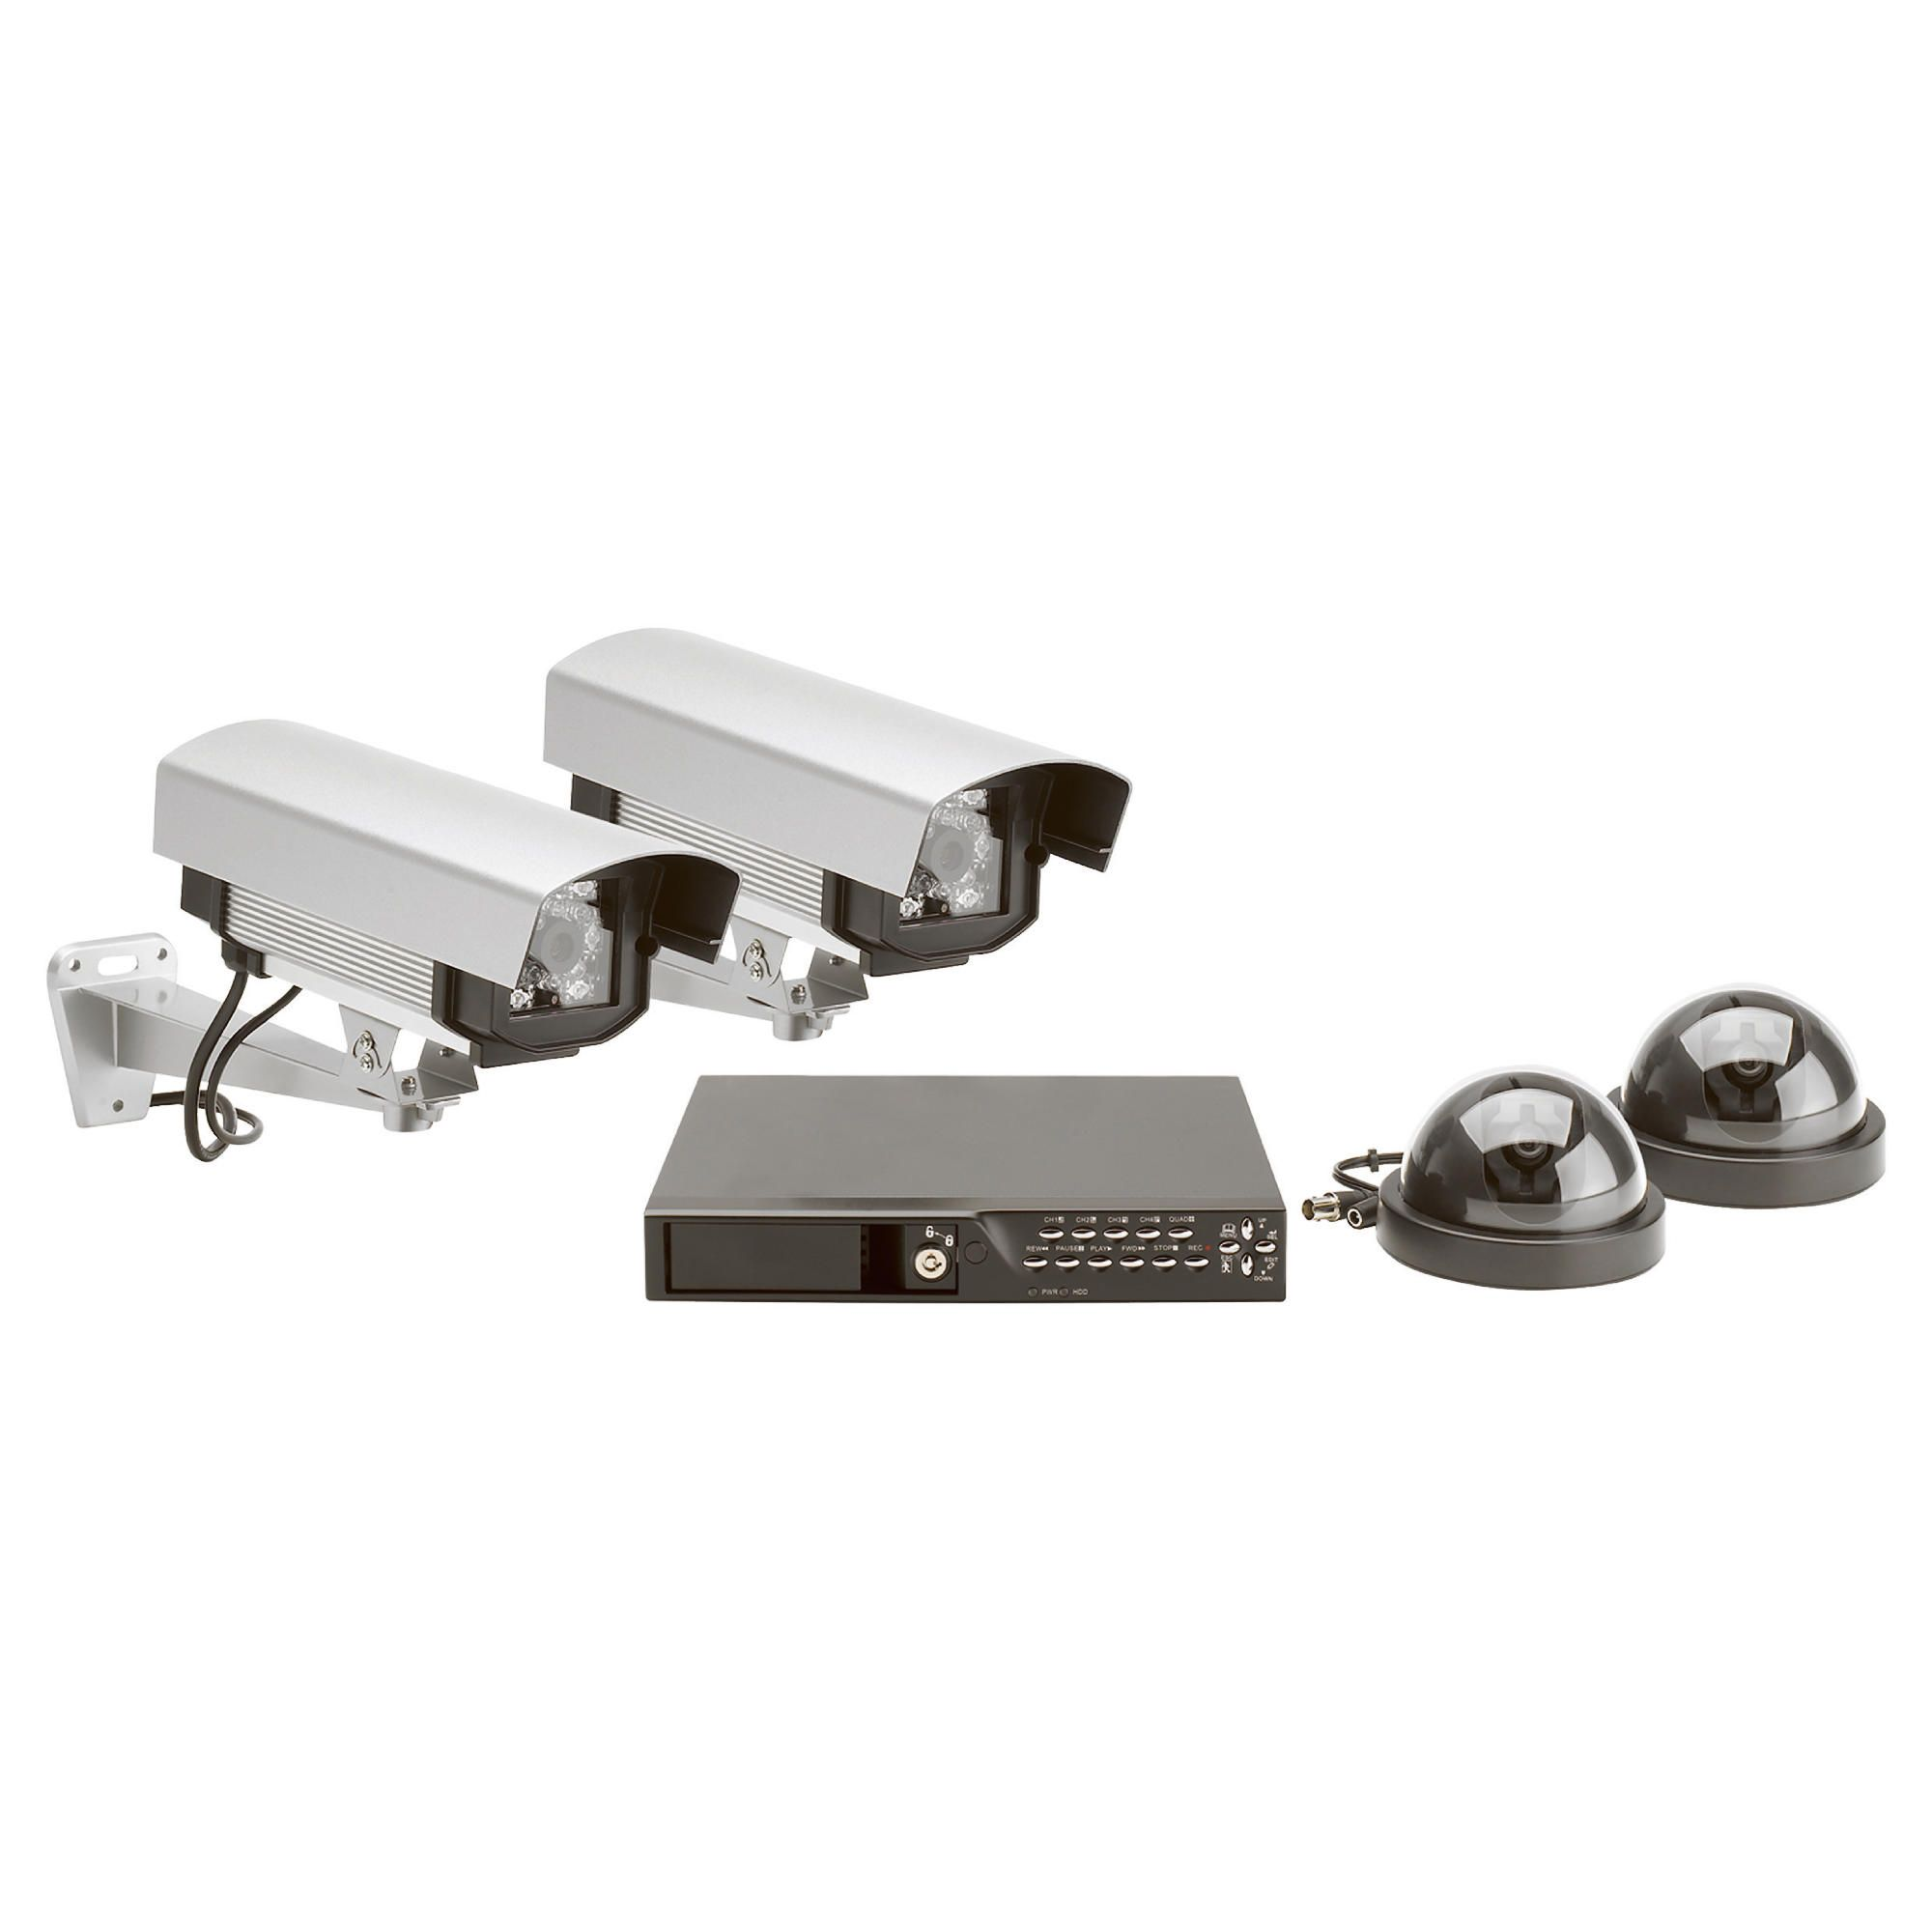 Wired Prof 4 Colour Camera and 4 Channel DVR CCTV Kit at Tescos Direct